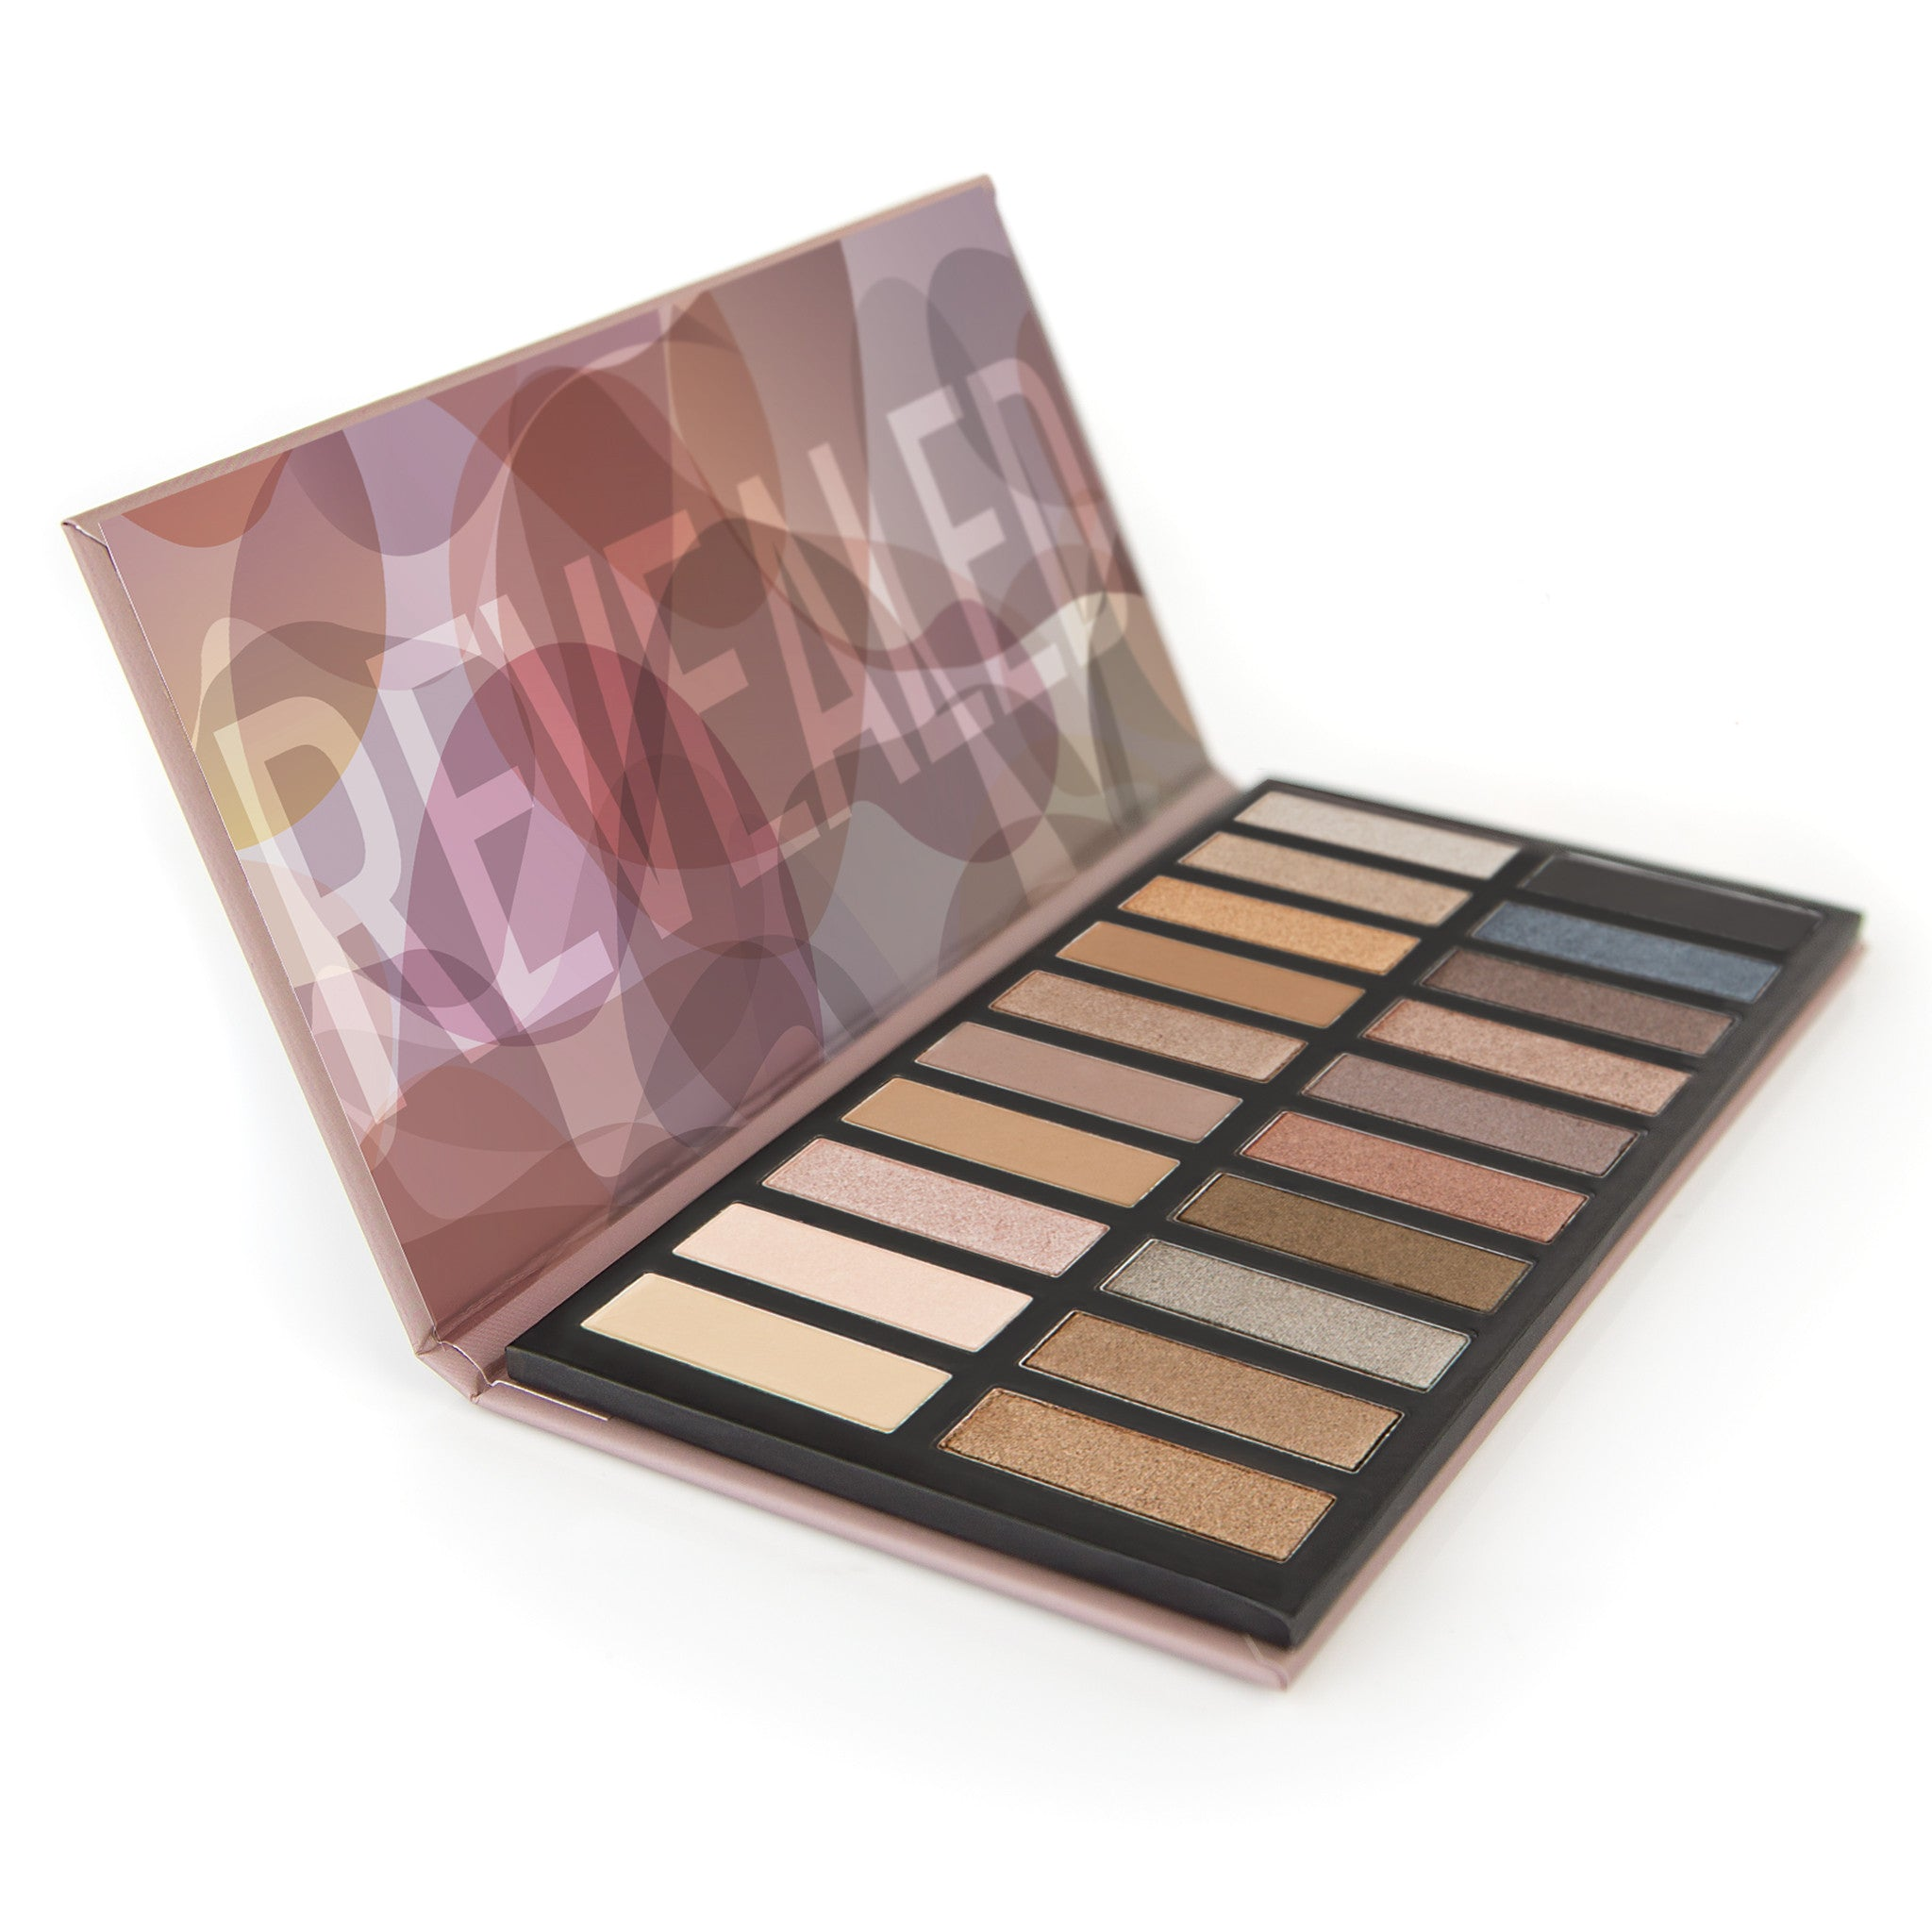 Coastal Scents coupon: Revealed Eyeshadow Palette